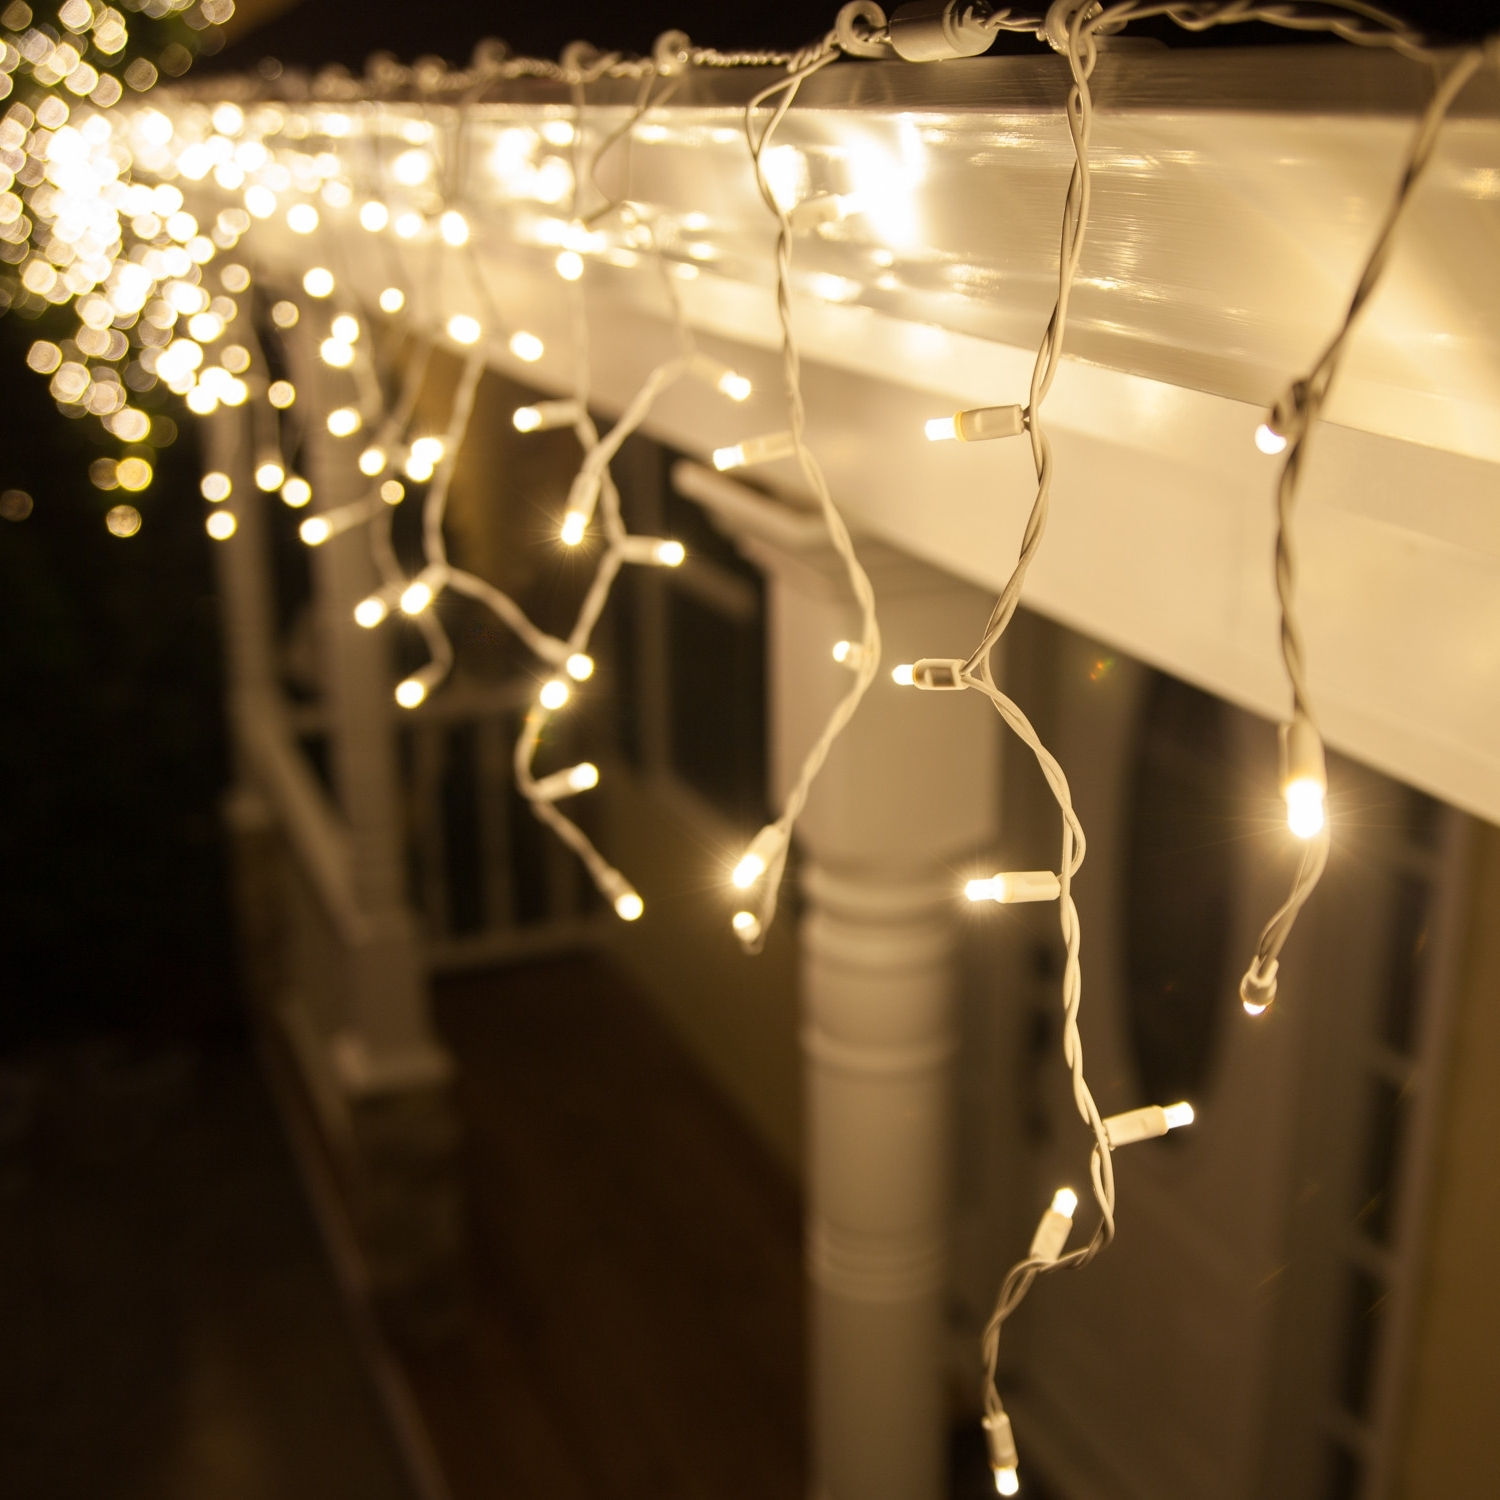 Hang Warm White Icicle Lights Outdoors And Inside Too! So Cozy For Throughout Recent Outdoor Hanging Xmas Lights (Gallery 7 of 20)